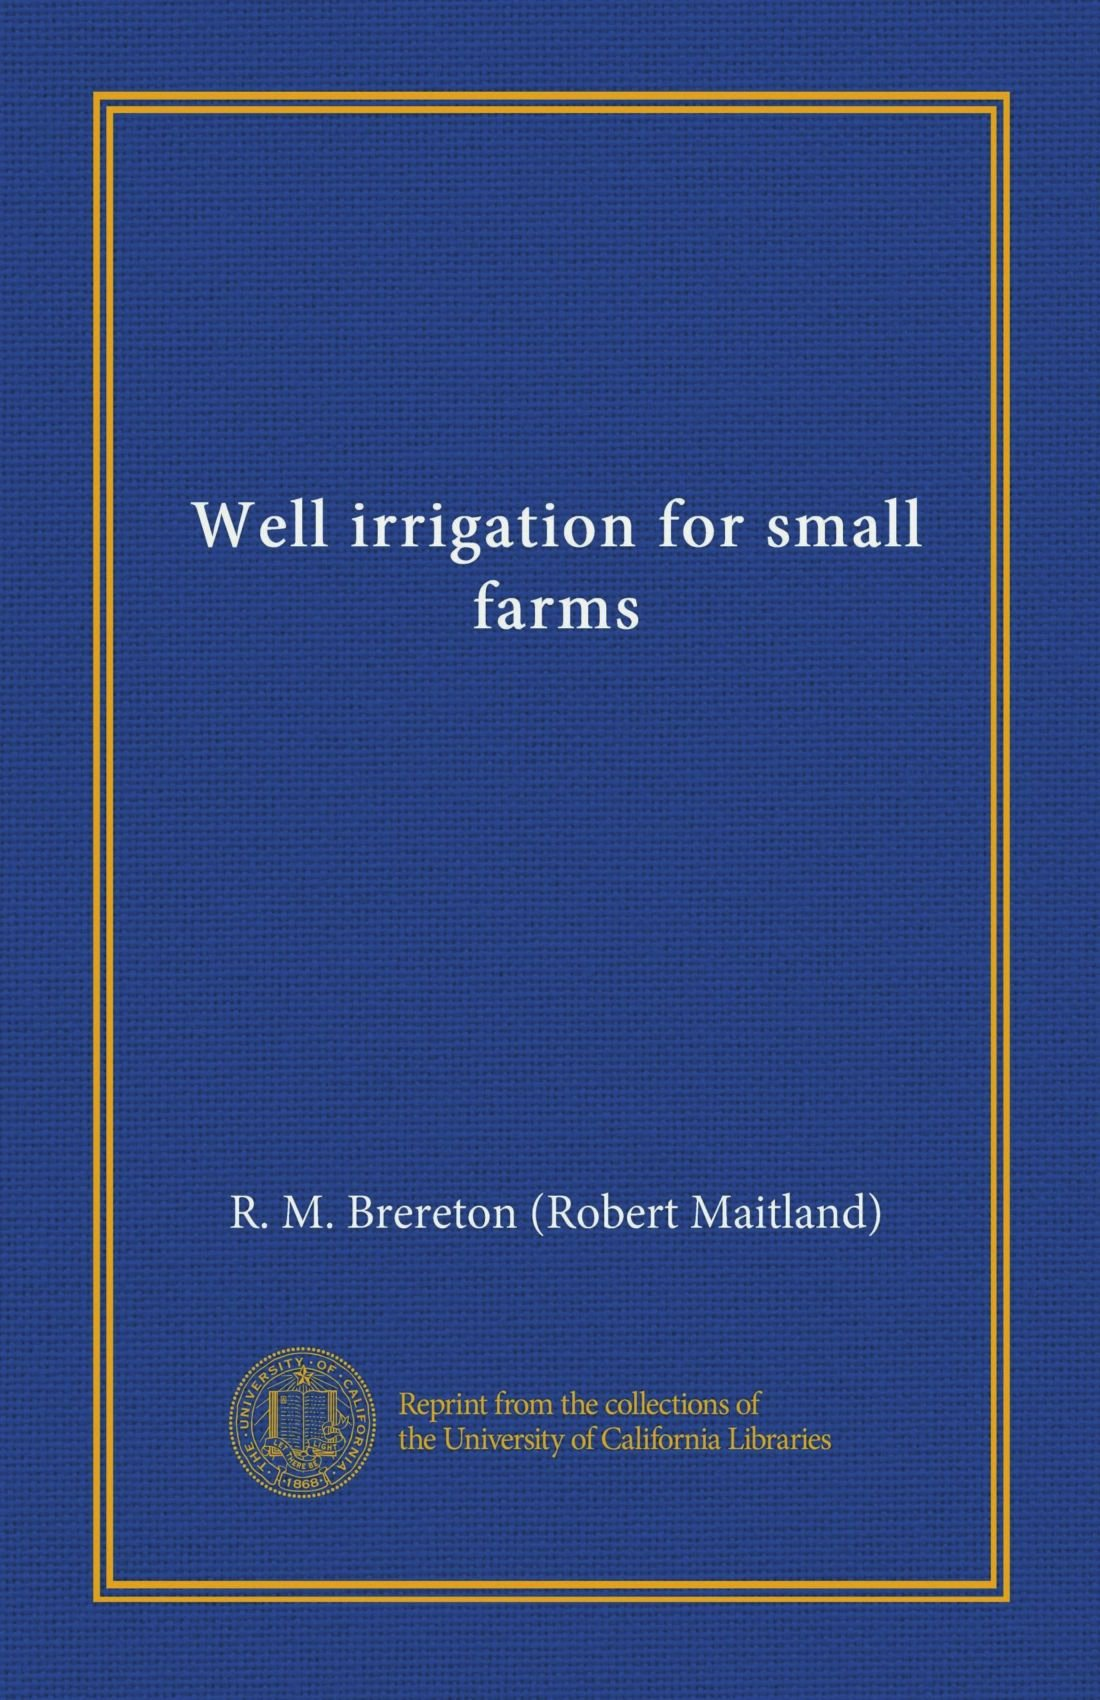 Well irrigation for small farms